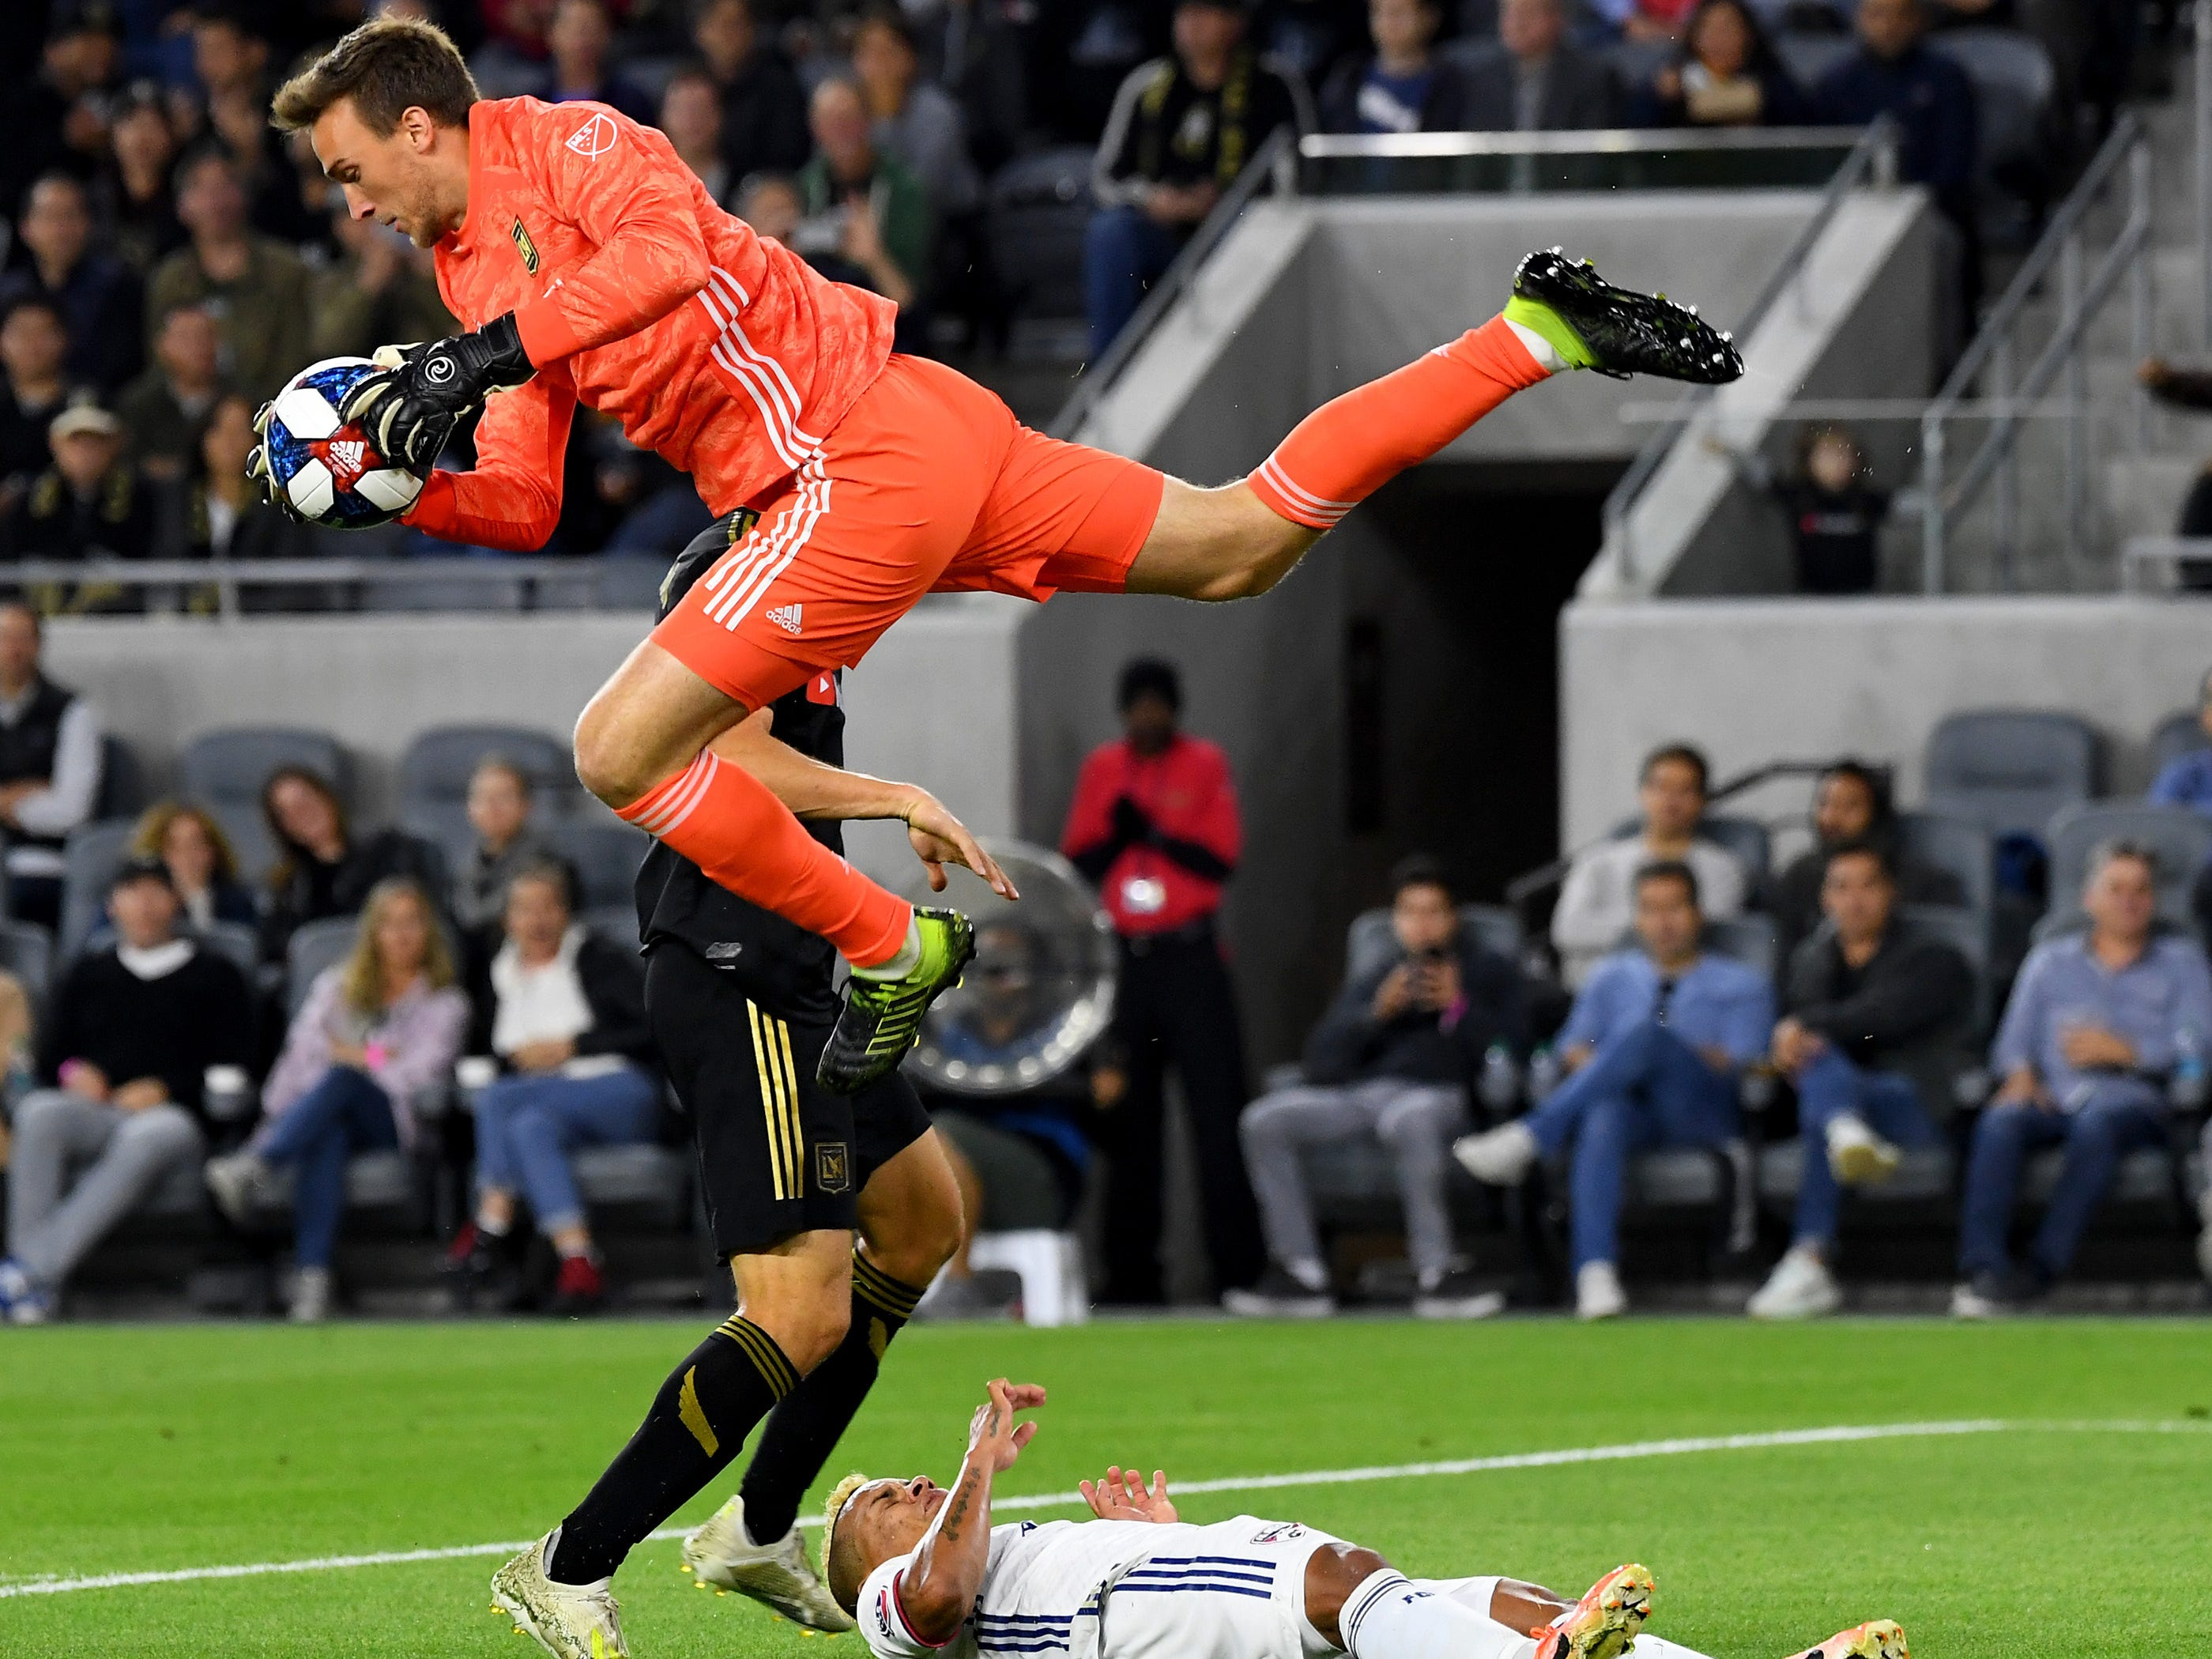 May 16: Los Angeles FC goalkeeper Tyler Miller leaps over FC Dallas midfielder Michael Barrios (21) while making a save on a shot on goal during the first half at Banc of California Stadium. LAFC won the game, 2-0.